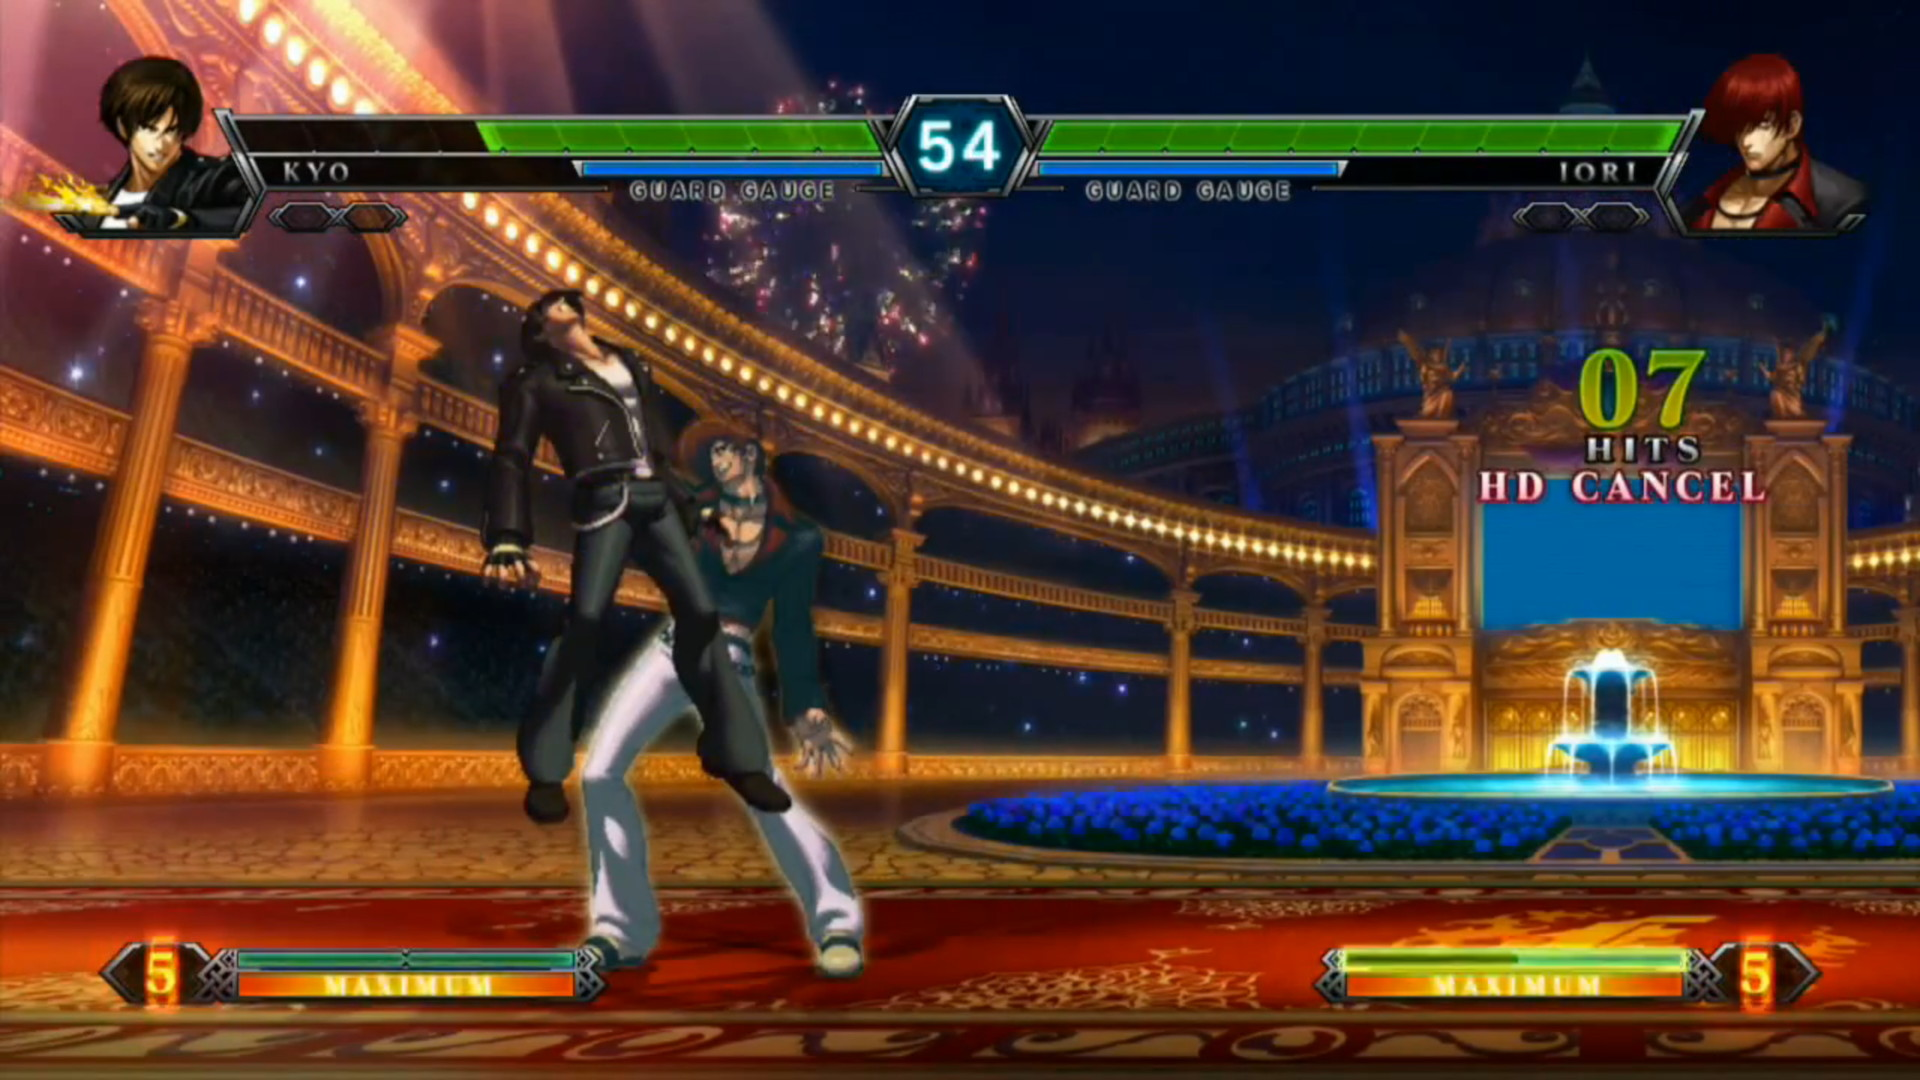 New game snk playmore releases the king of fighters 97 into the play store, a